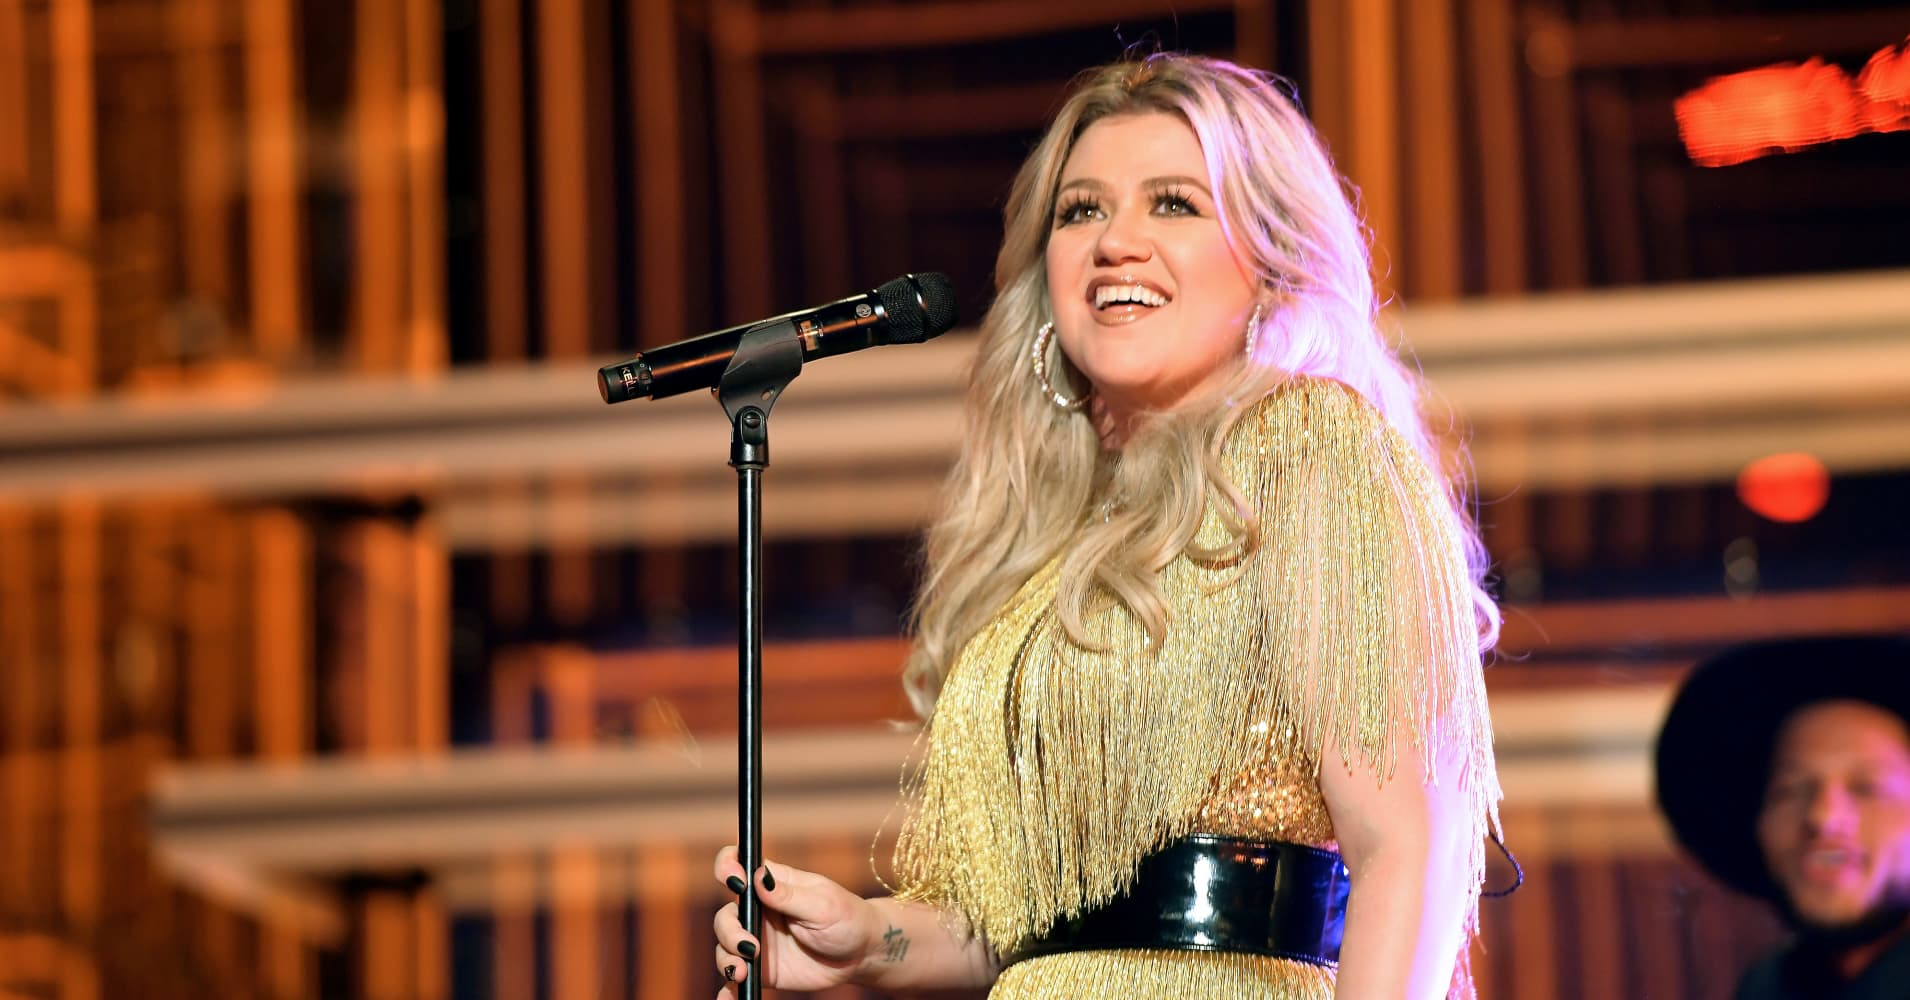 43. Kelly Clarkson 43. Kelly Clarkson new images